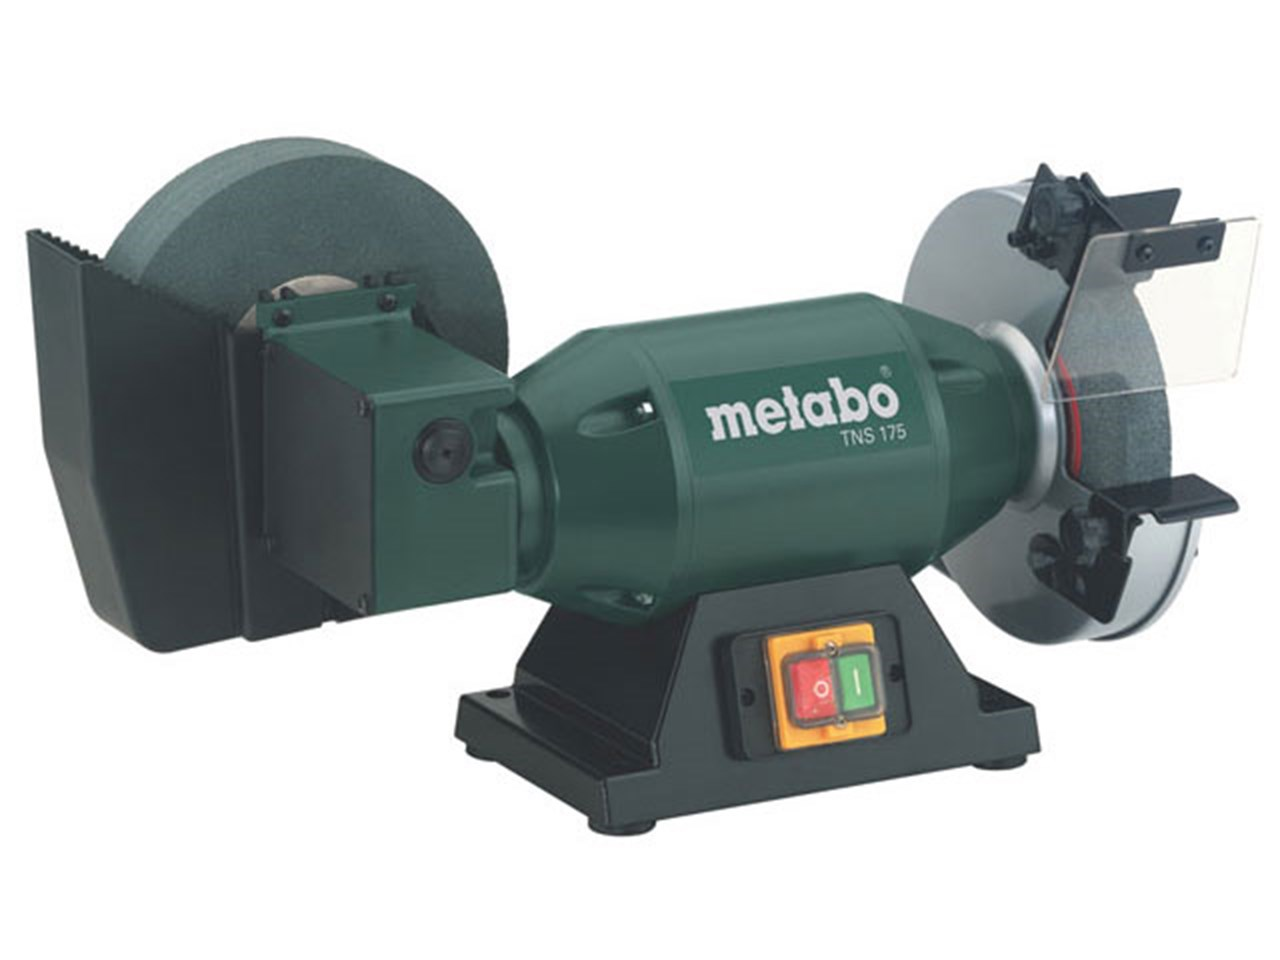 Metabo Tns175 240v 500w Bench Grinder And Wet Stone Function